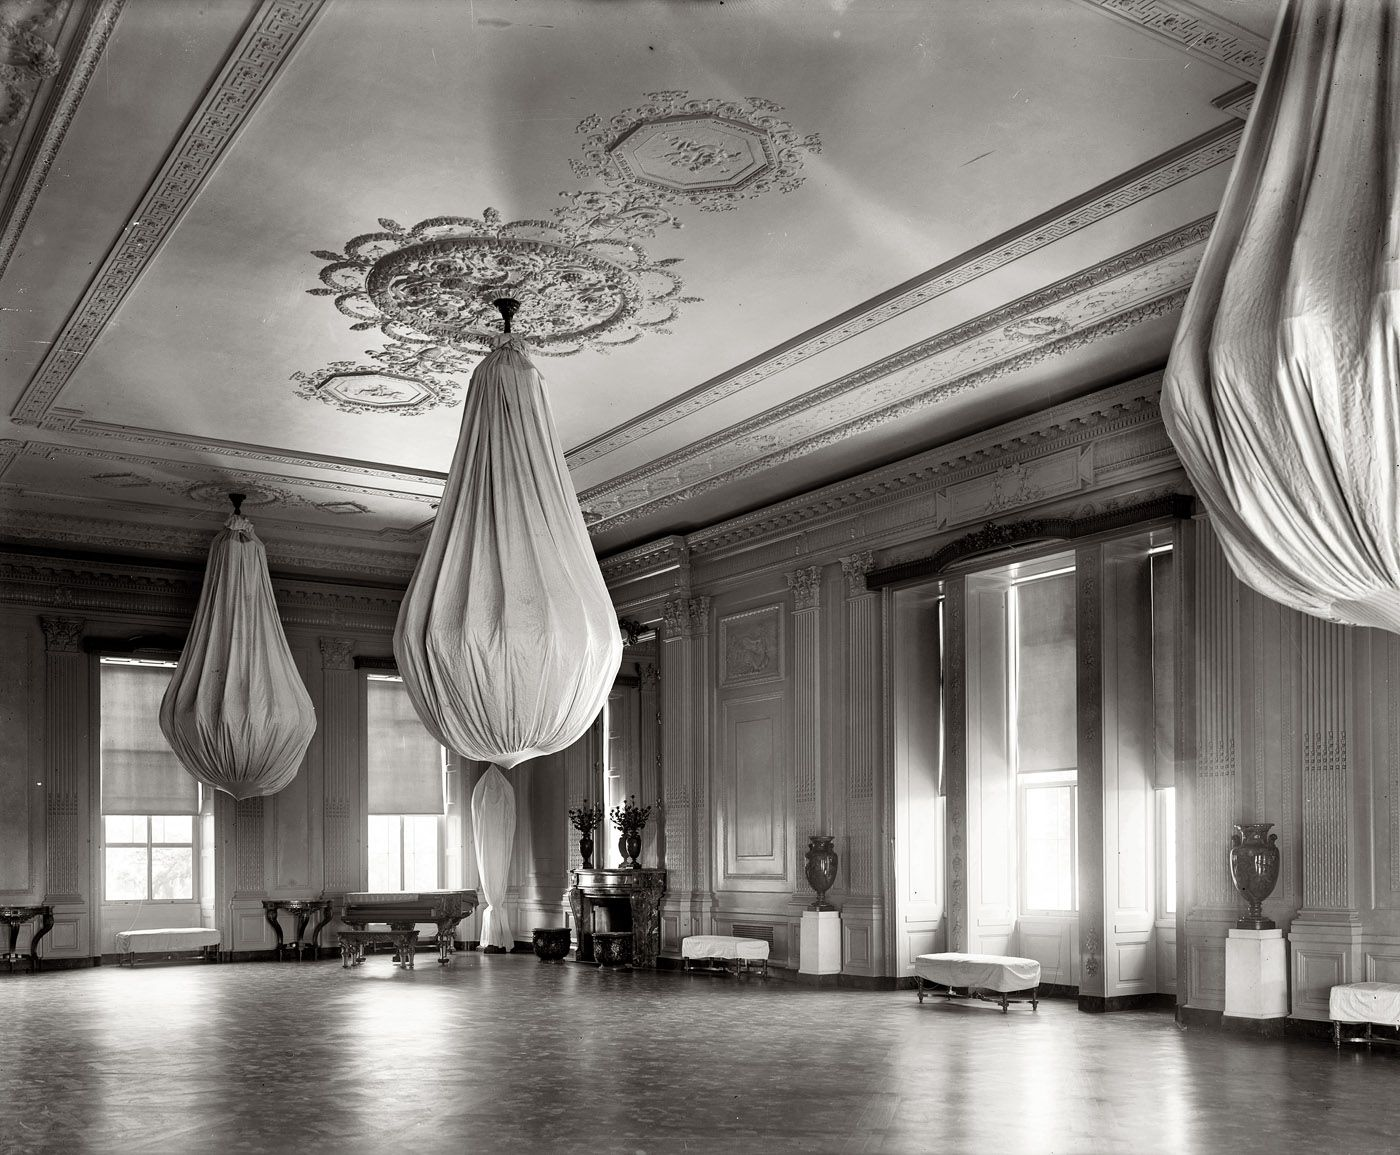 (c. 1920) East Room of the White House - Washington, D.C ...1920s White House